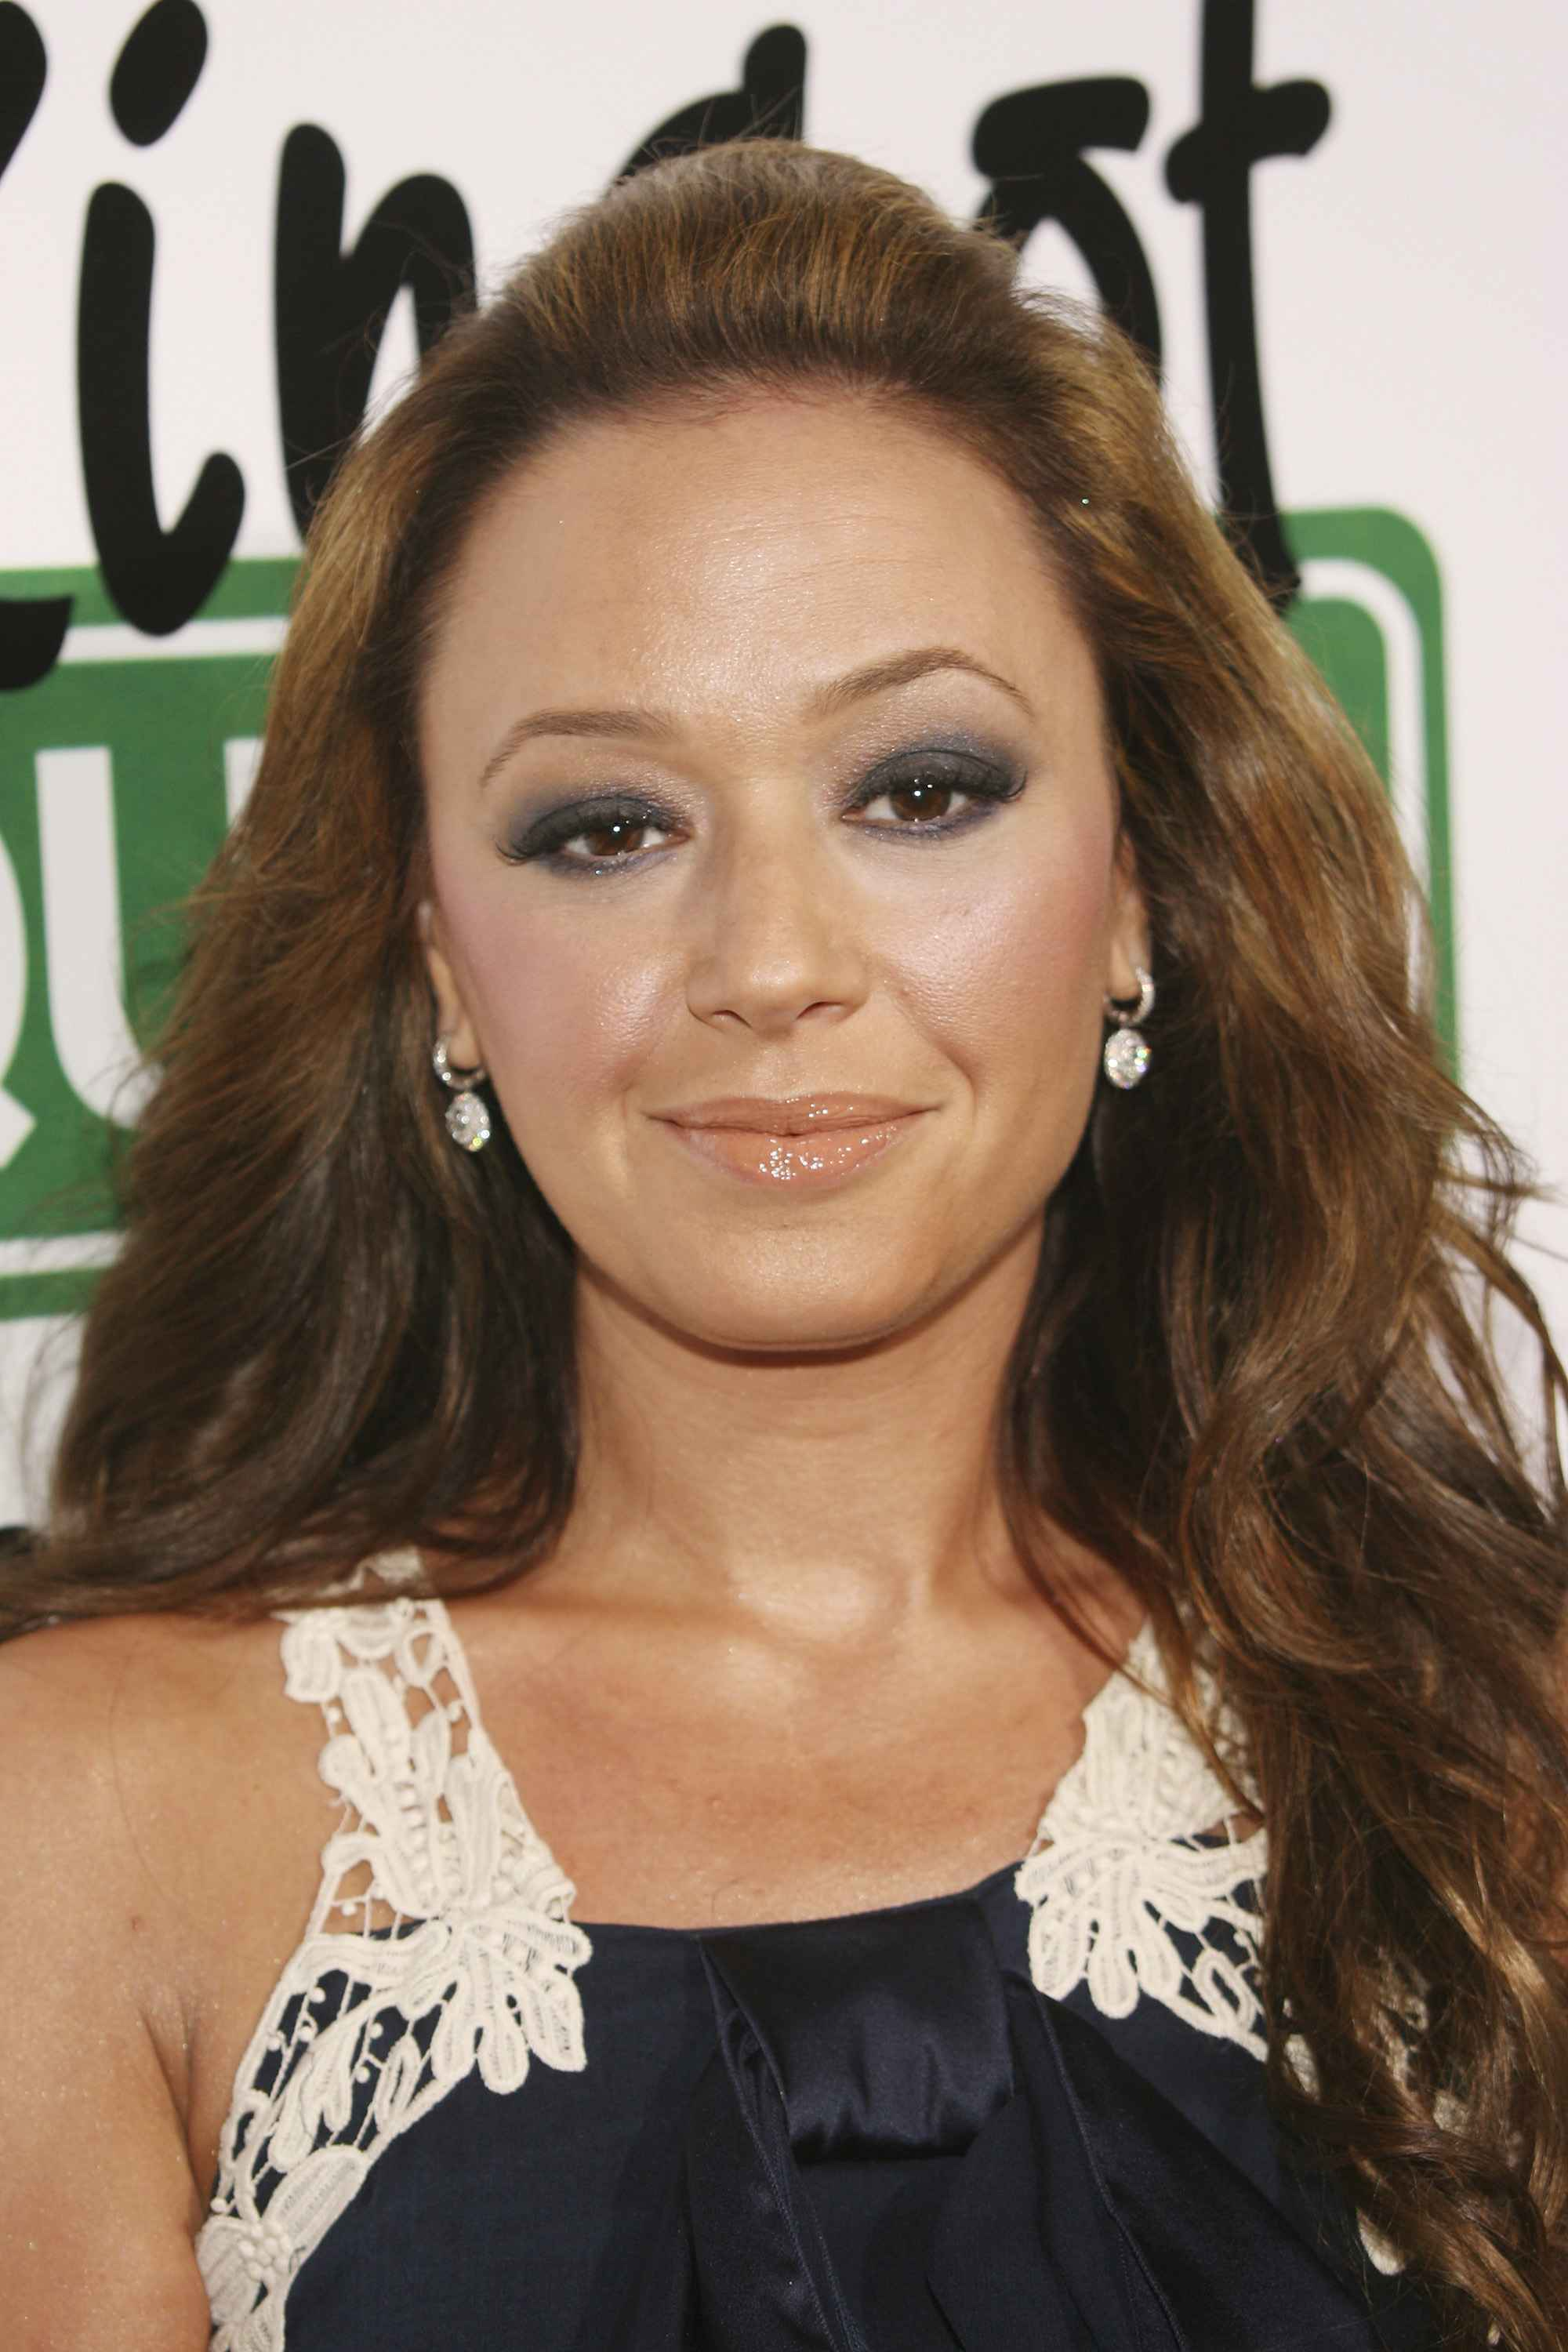 Leah Remini of King of Queens quits Scientology